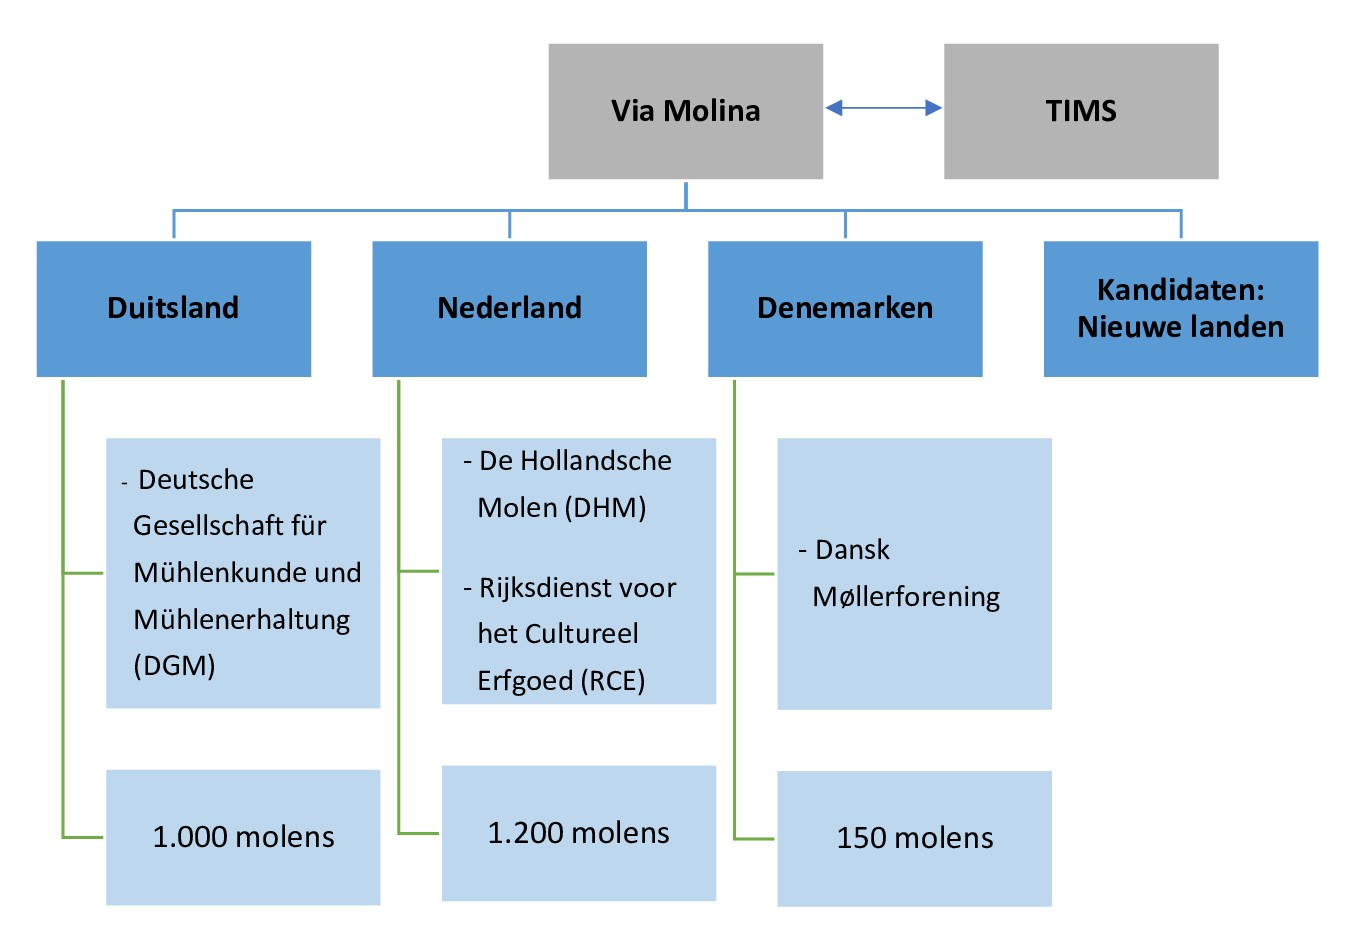 20201120_Organizations_Organigram_NL_MB